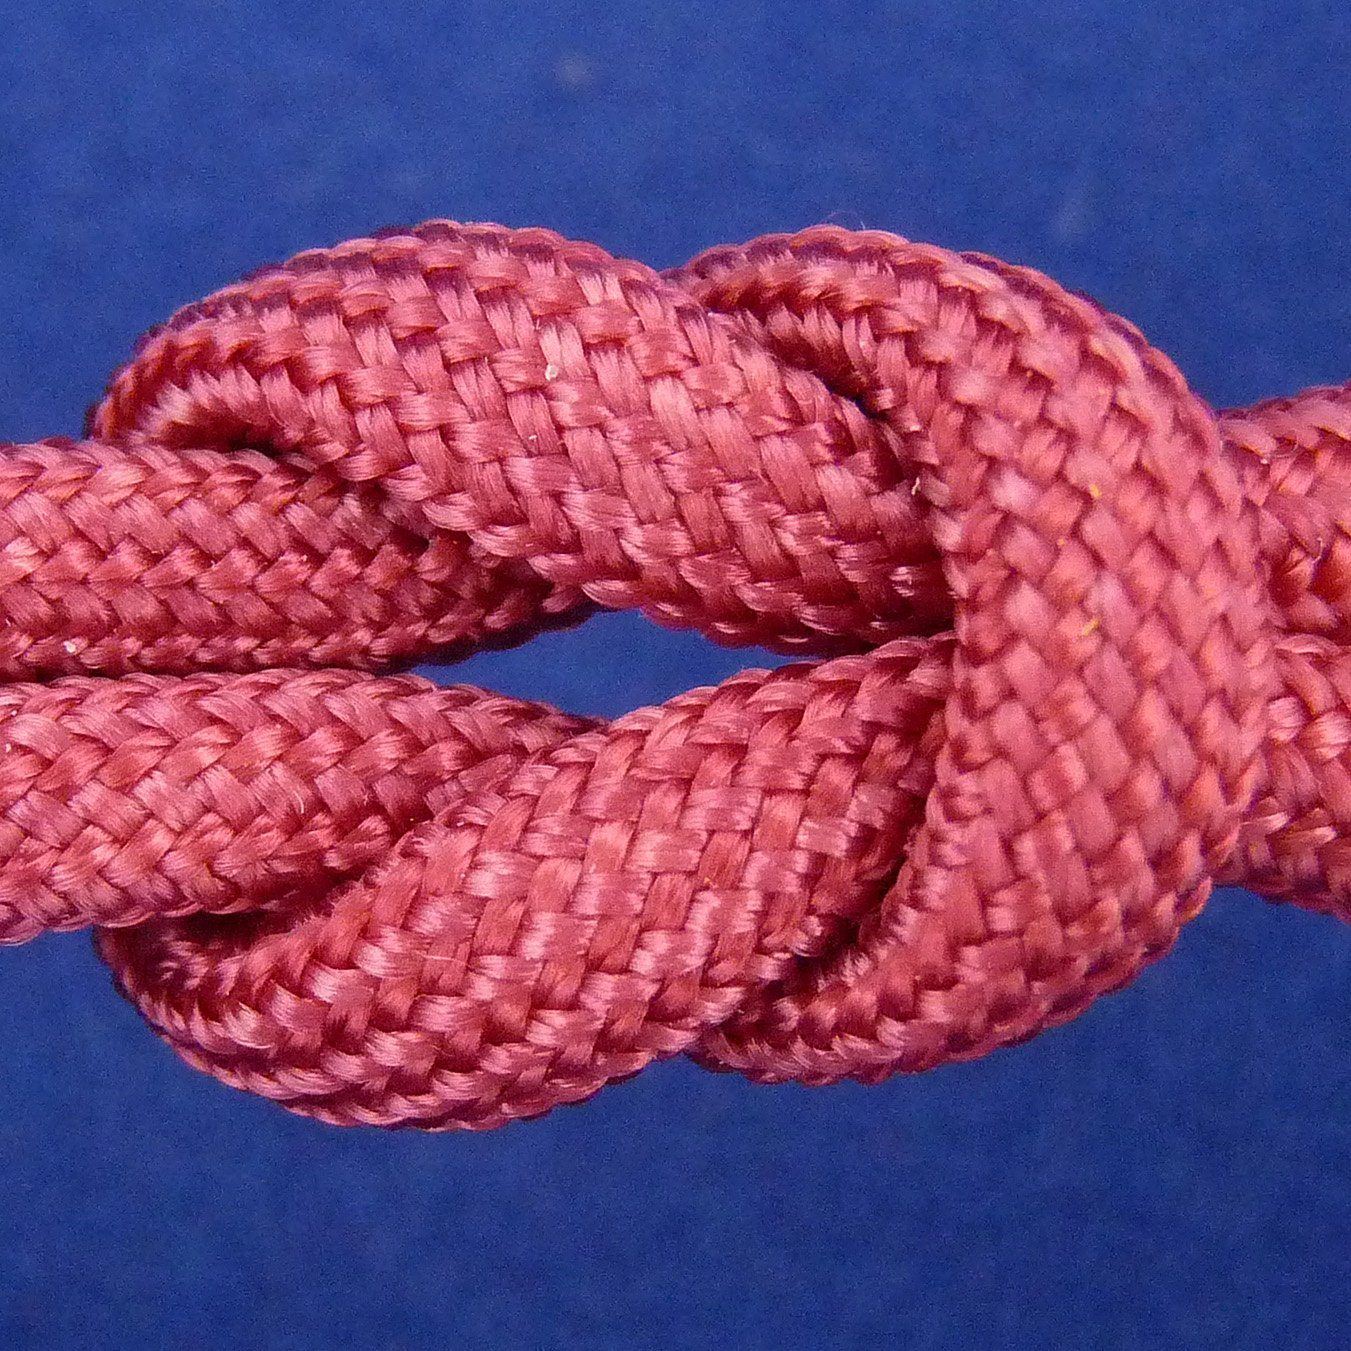 MilSpec Paracord Cranberry Red 310 ft. Spool, Military Survival Braided Parachute 550 Cord. Use with Paracord Tools for Tent Camping, Hiking, Hunting Ropes, Bracelets & Projects. Plus 2 eBooks. by Paracord 550 Mil-Spec (TM) (Image #8)